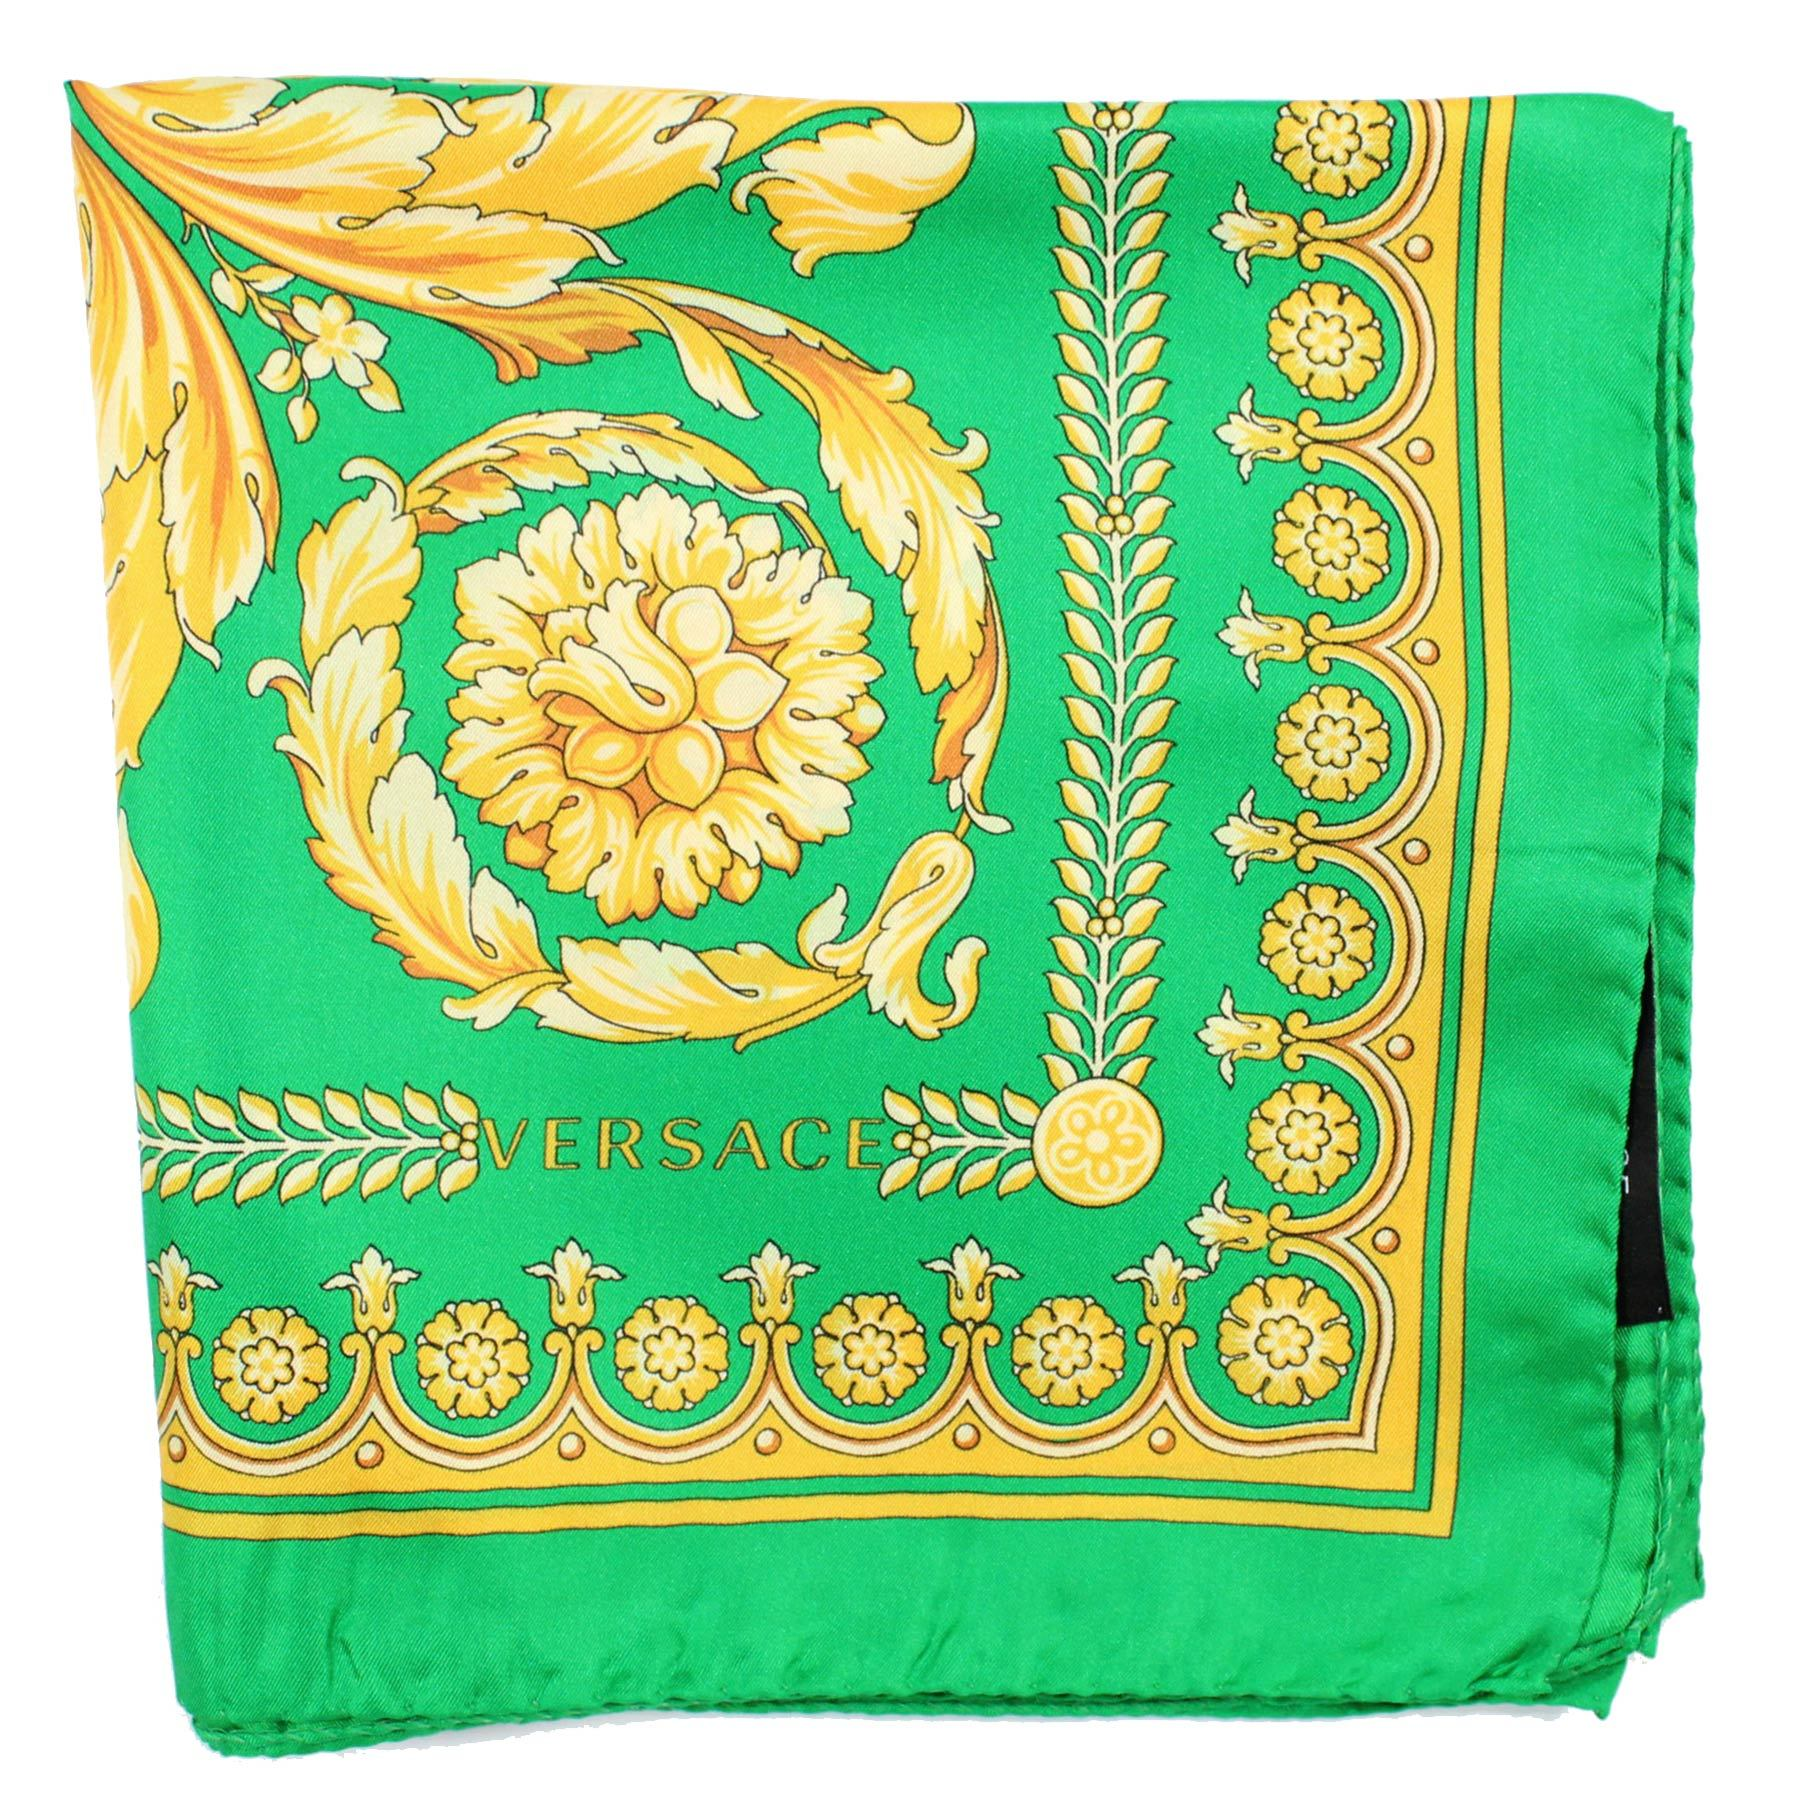 Versace green gold scarf